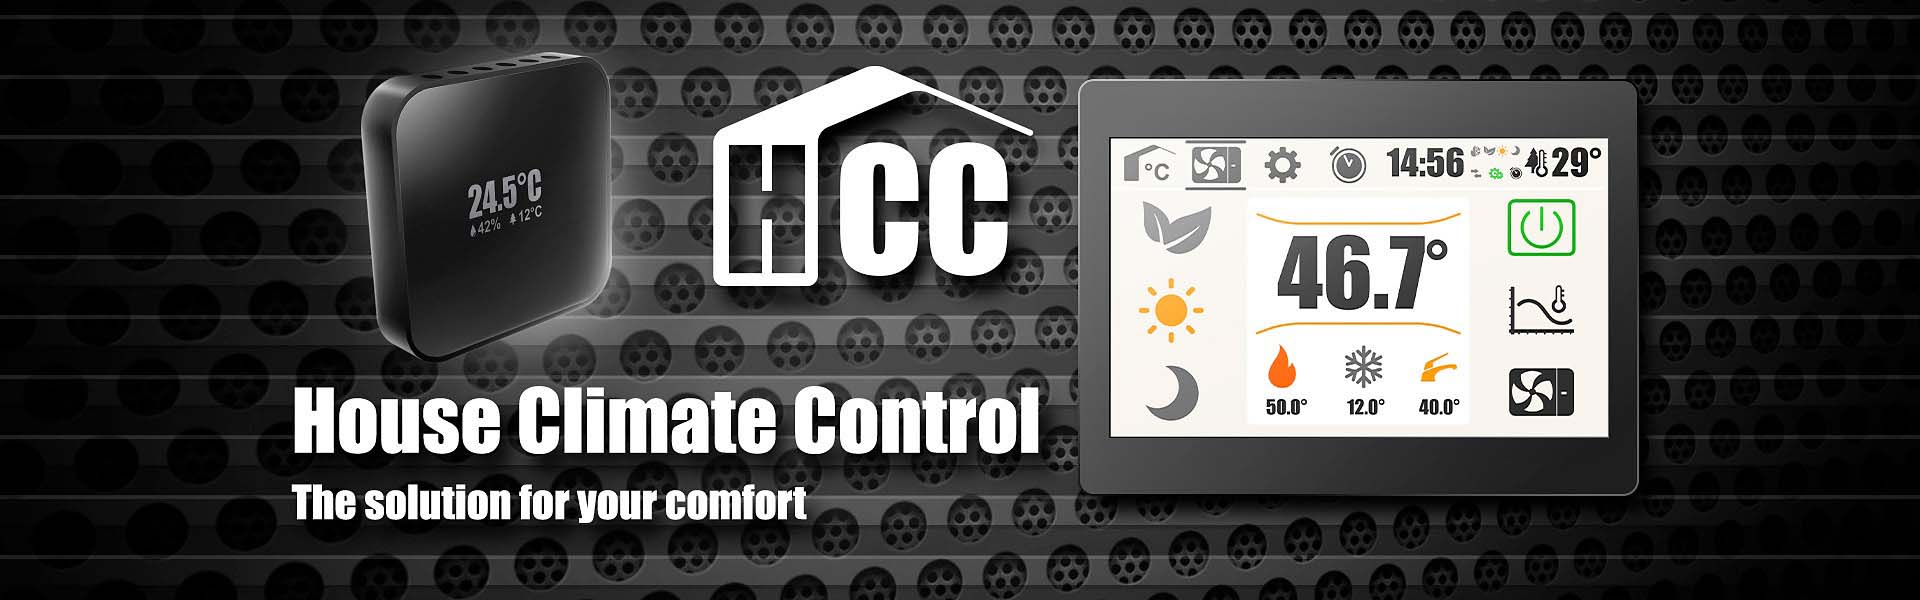 homepage-HCC-eng